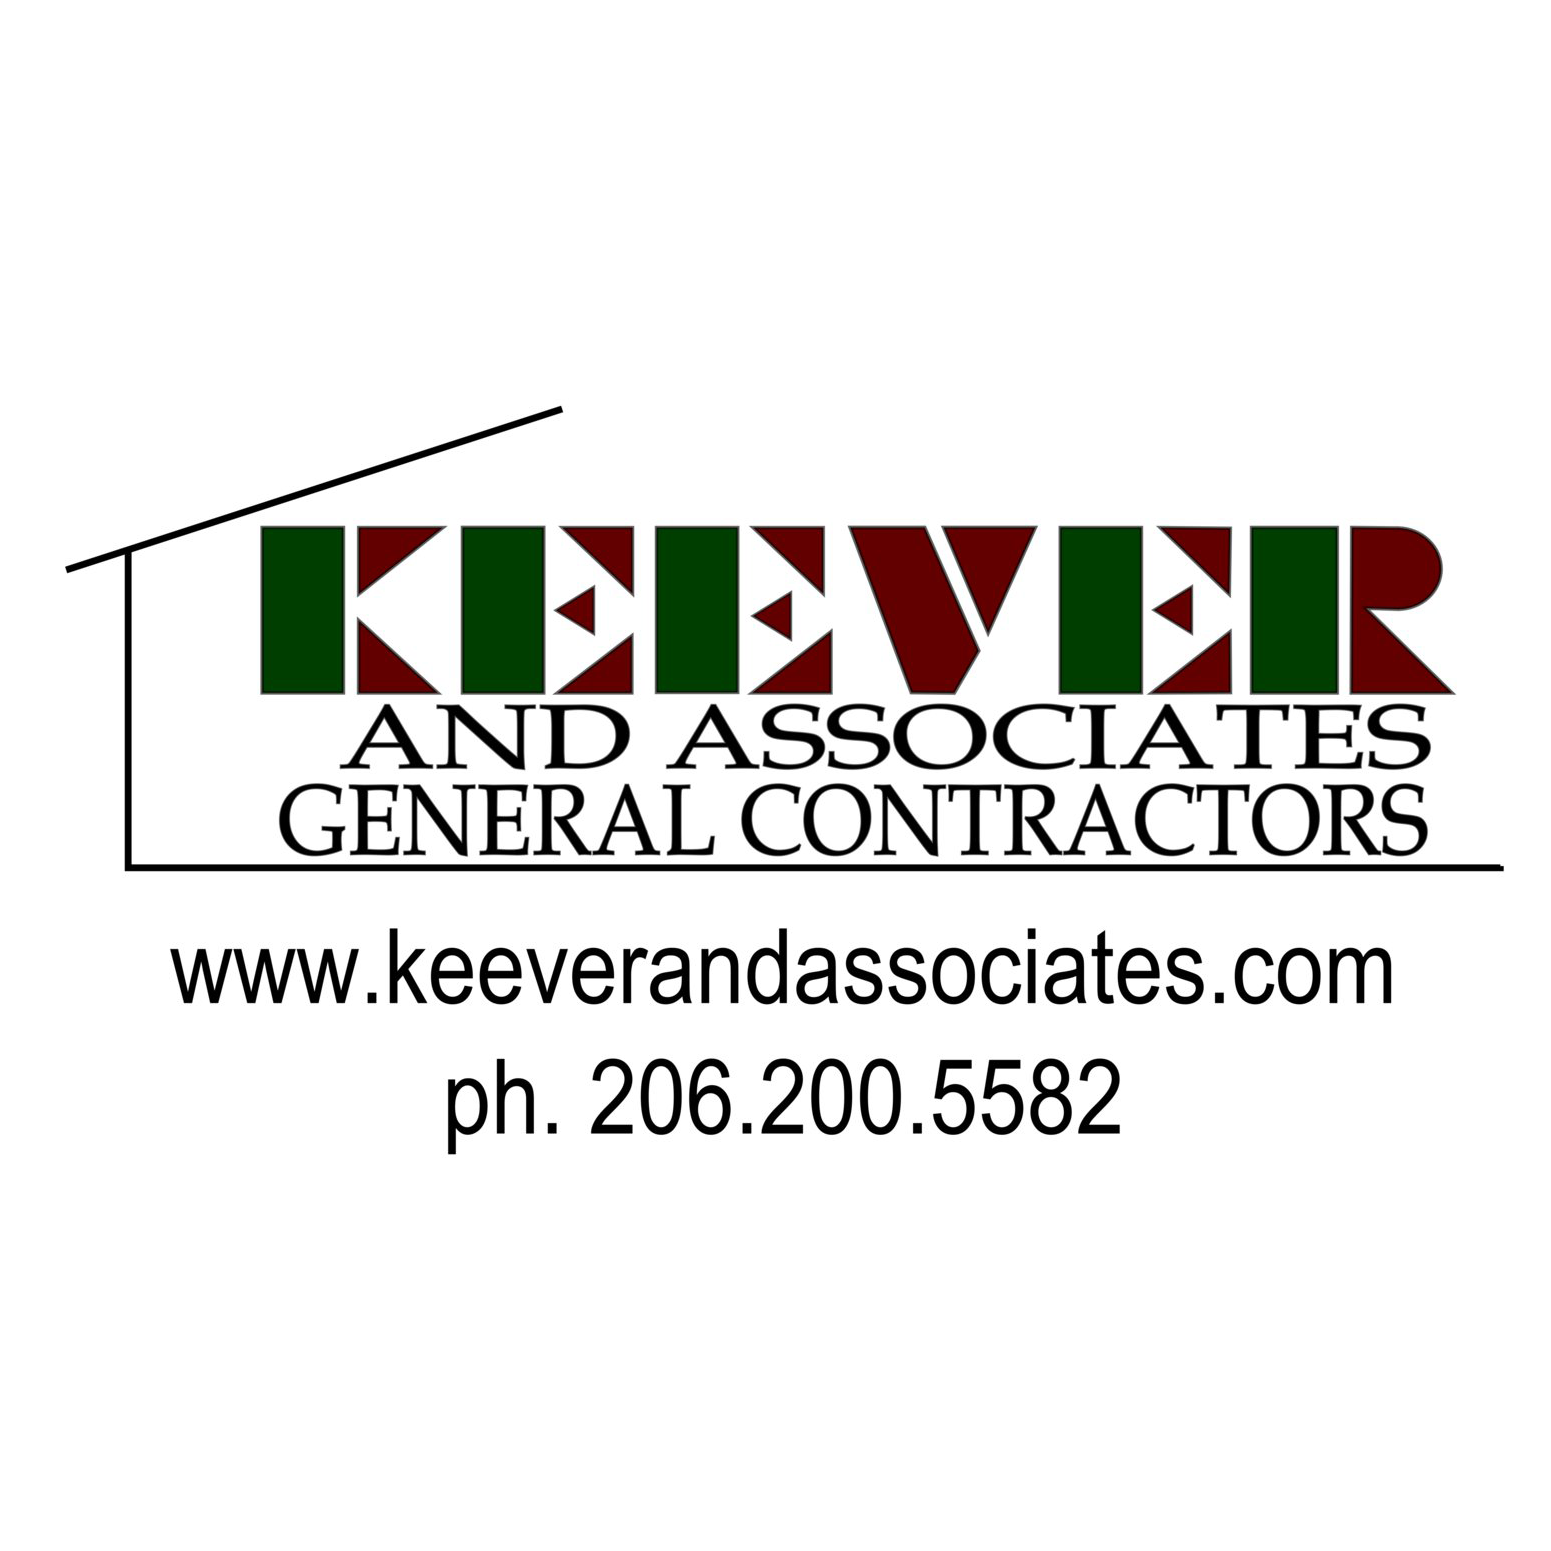 Keever and Associates